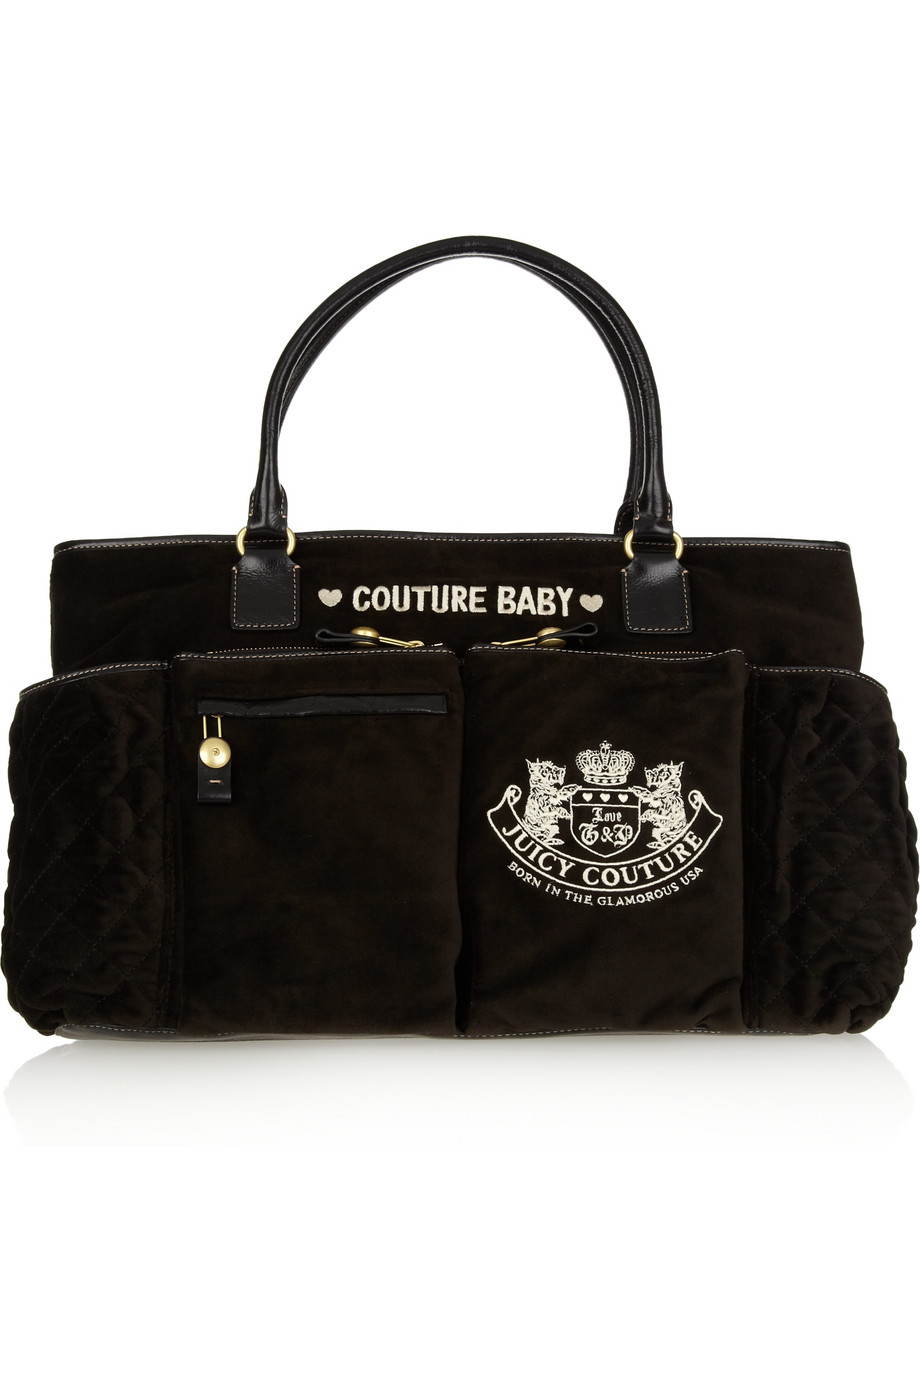 juicy couture baby bag velour and leather tote in black lyst. Black Bedroom Furniture Sets. Home Design Ideas